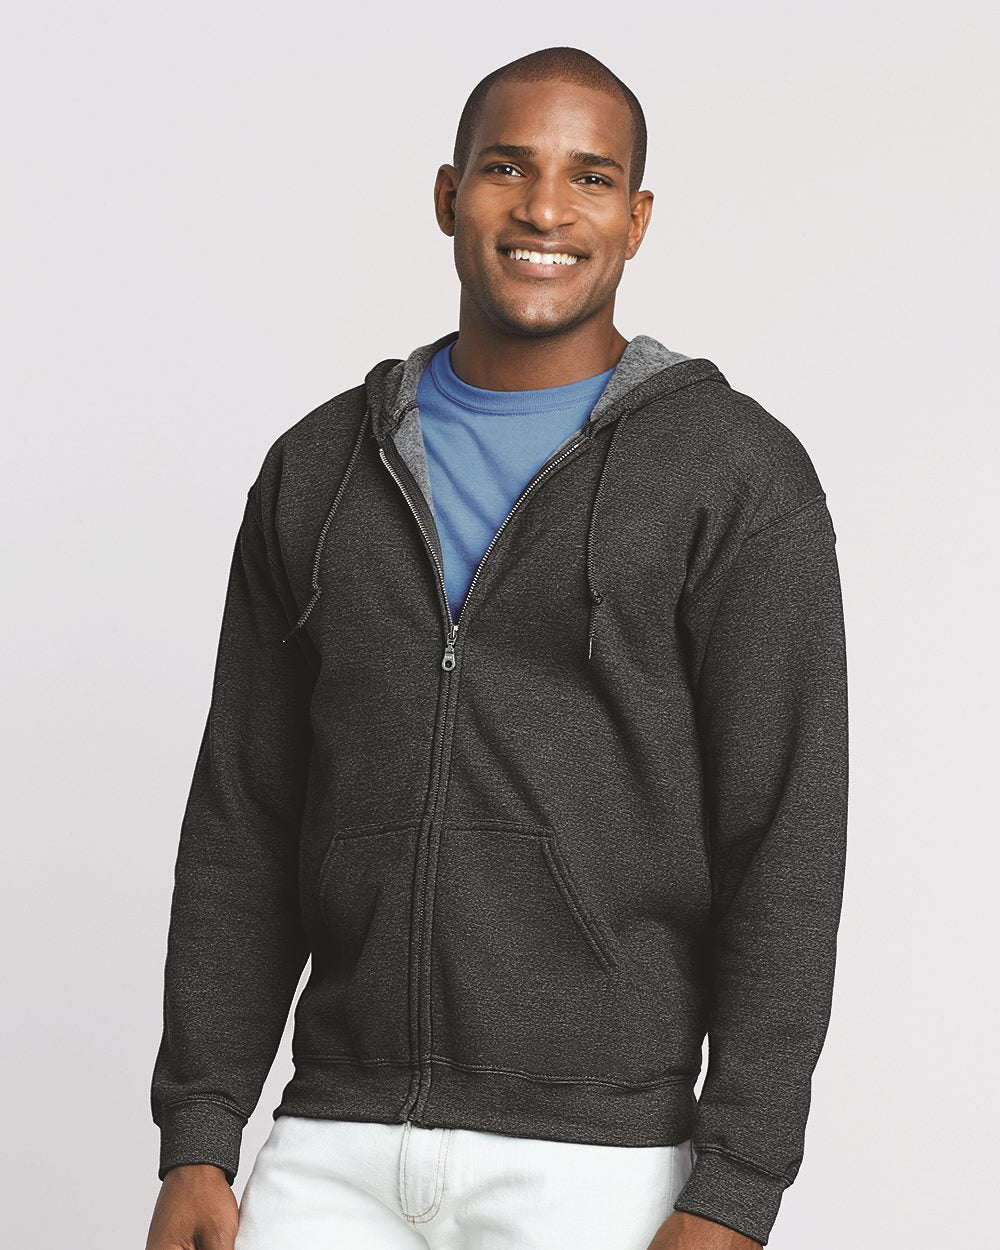 Men's Personalized Zipper Hoodie